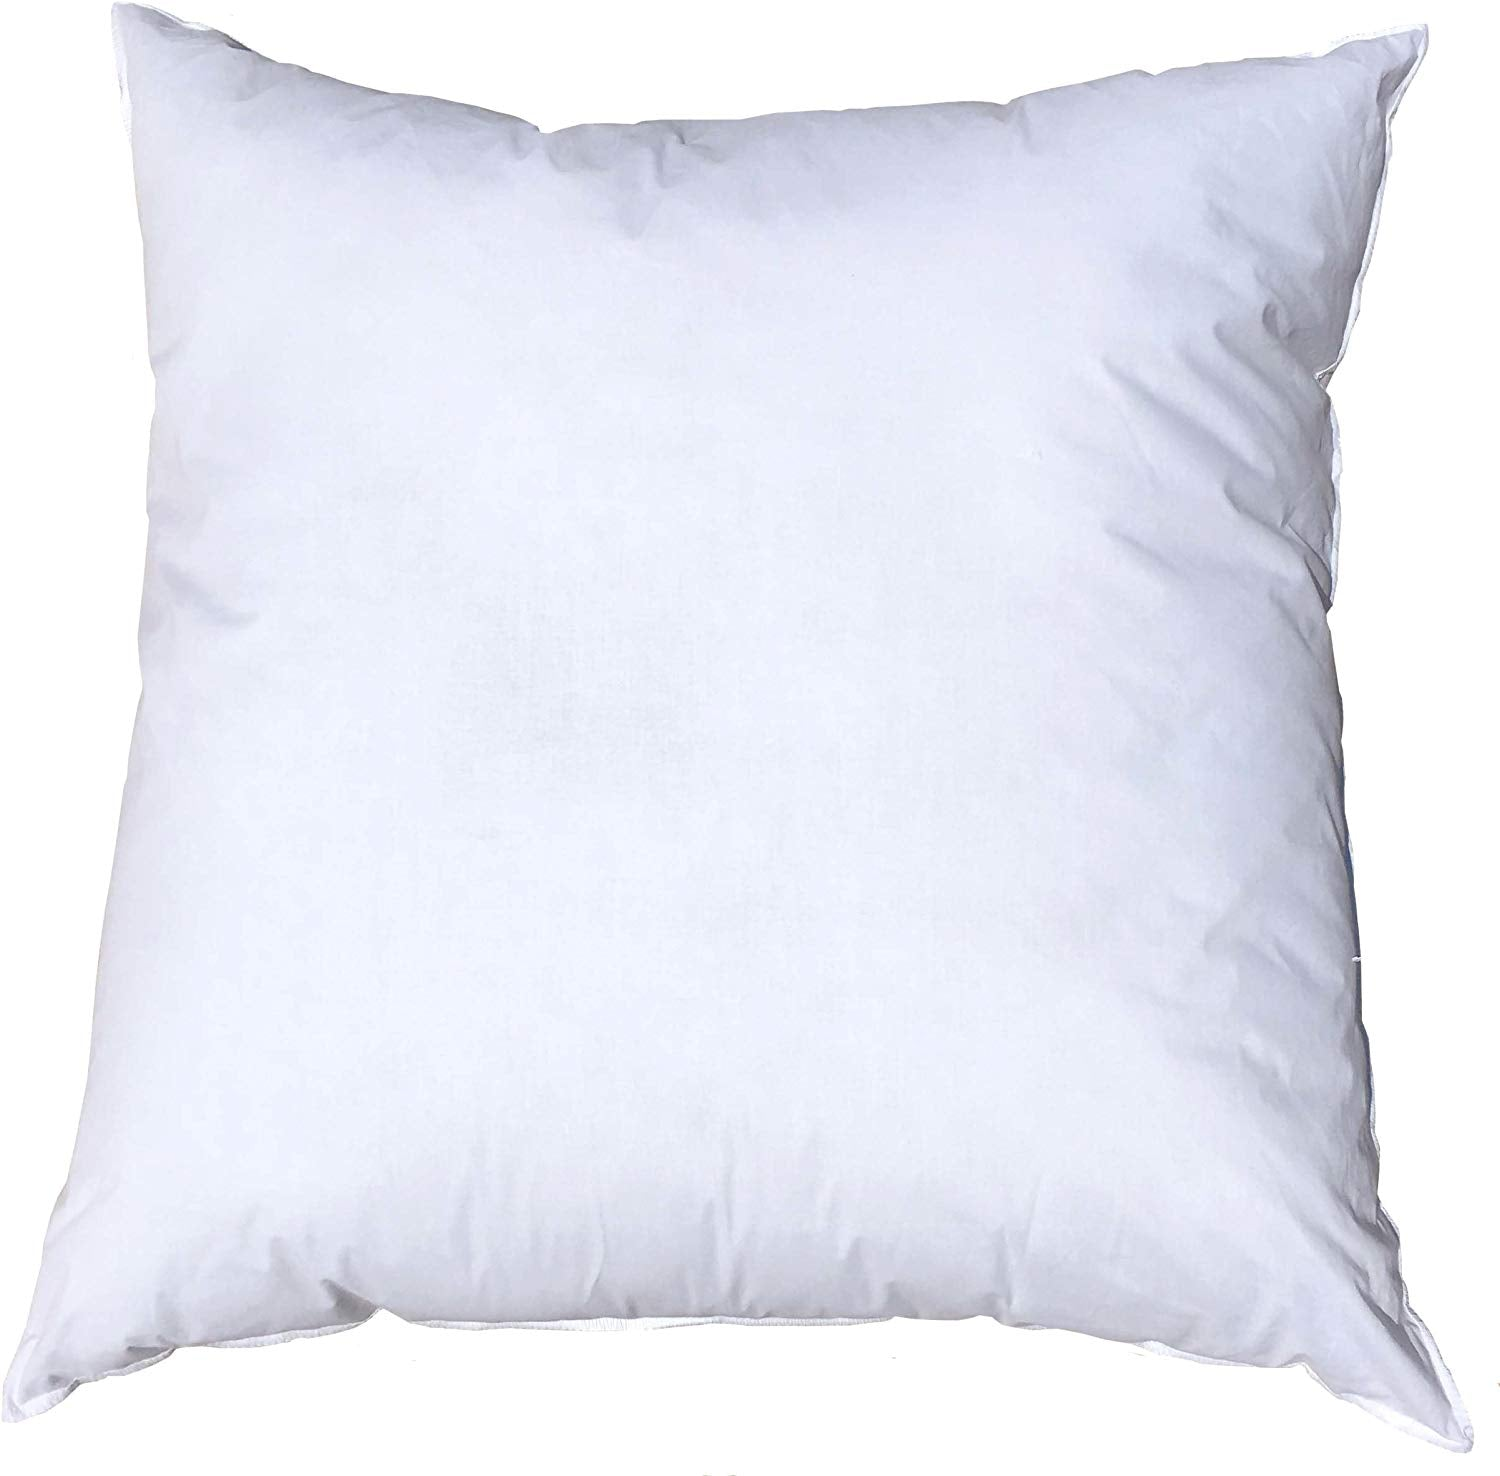 Decorative Pillow Insert